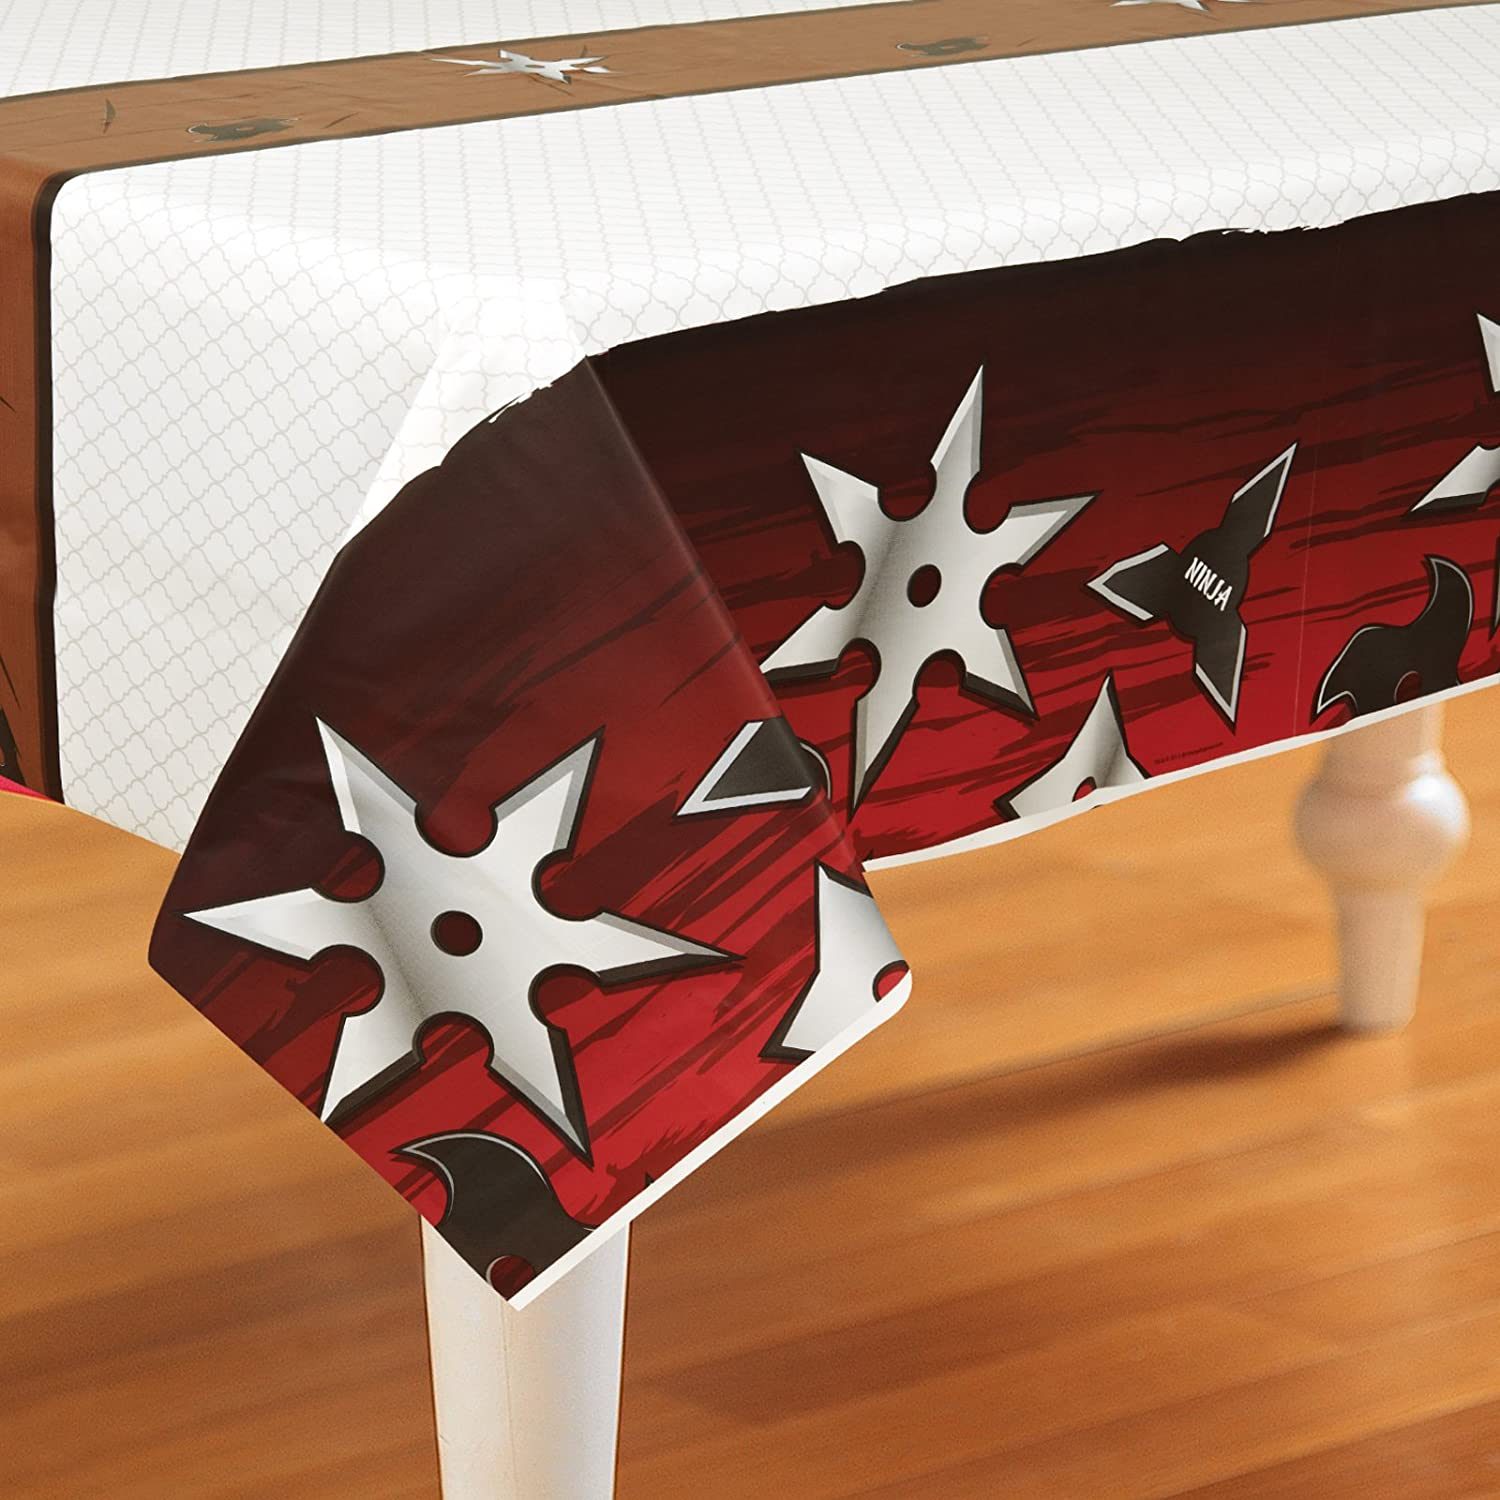 Creative Converting Ninja Warrior Party Supplies - Plastic Table Cover